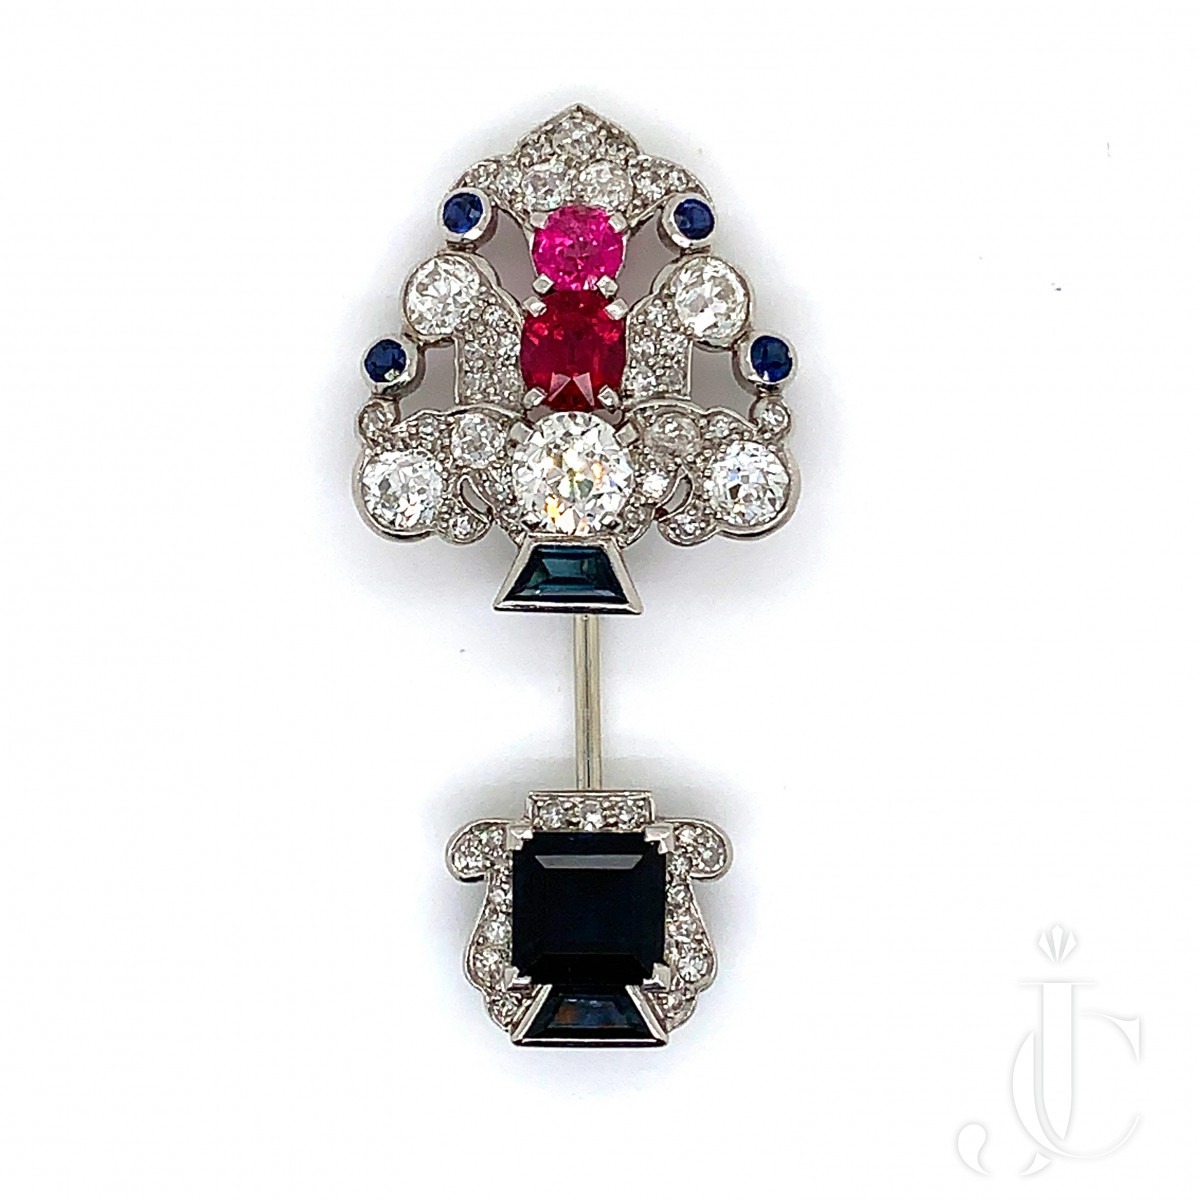 Platinum jabot with sapphire, ruby and diamond by Cartier